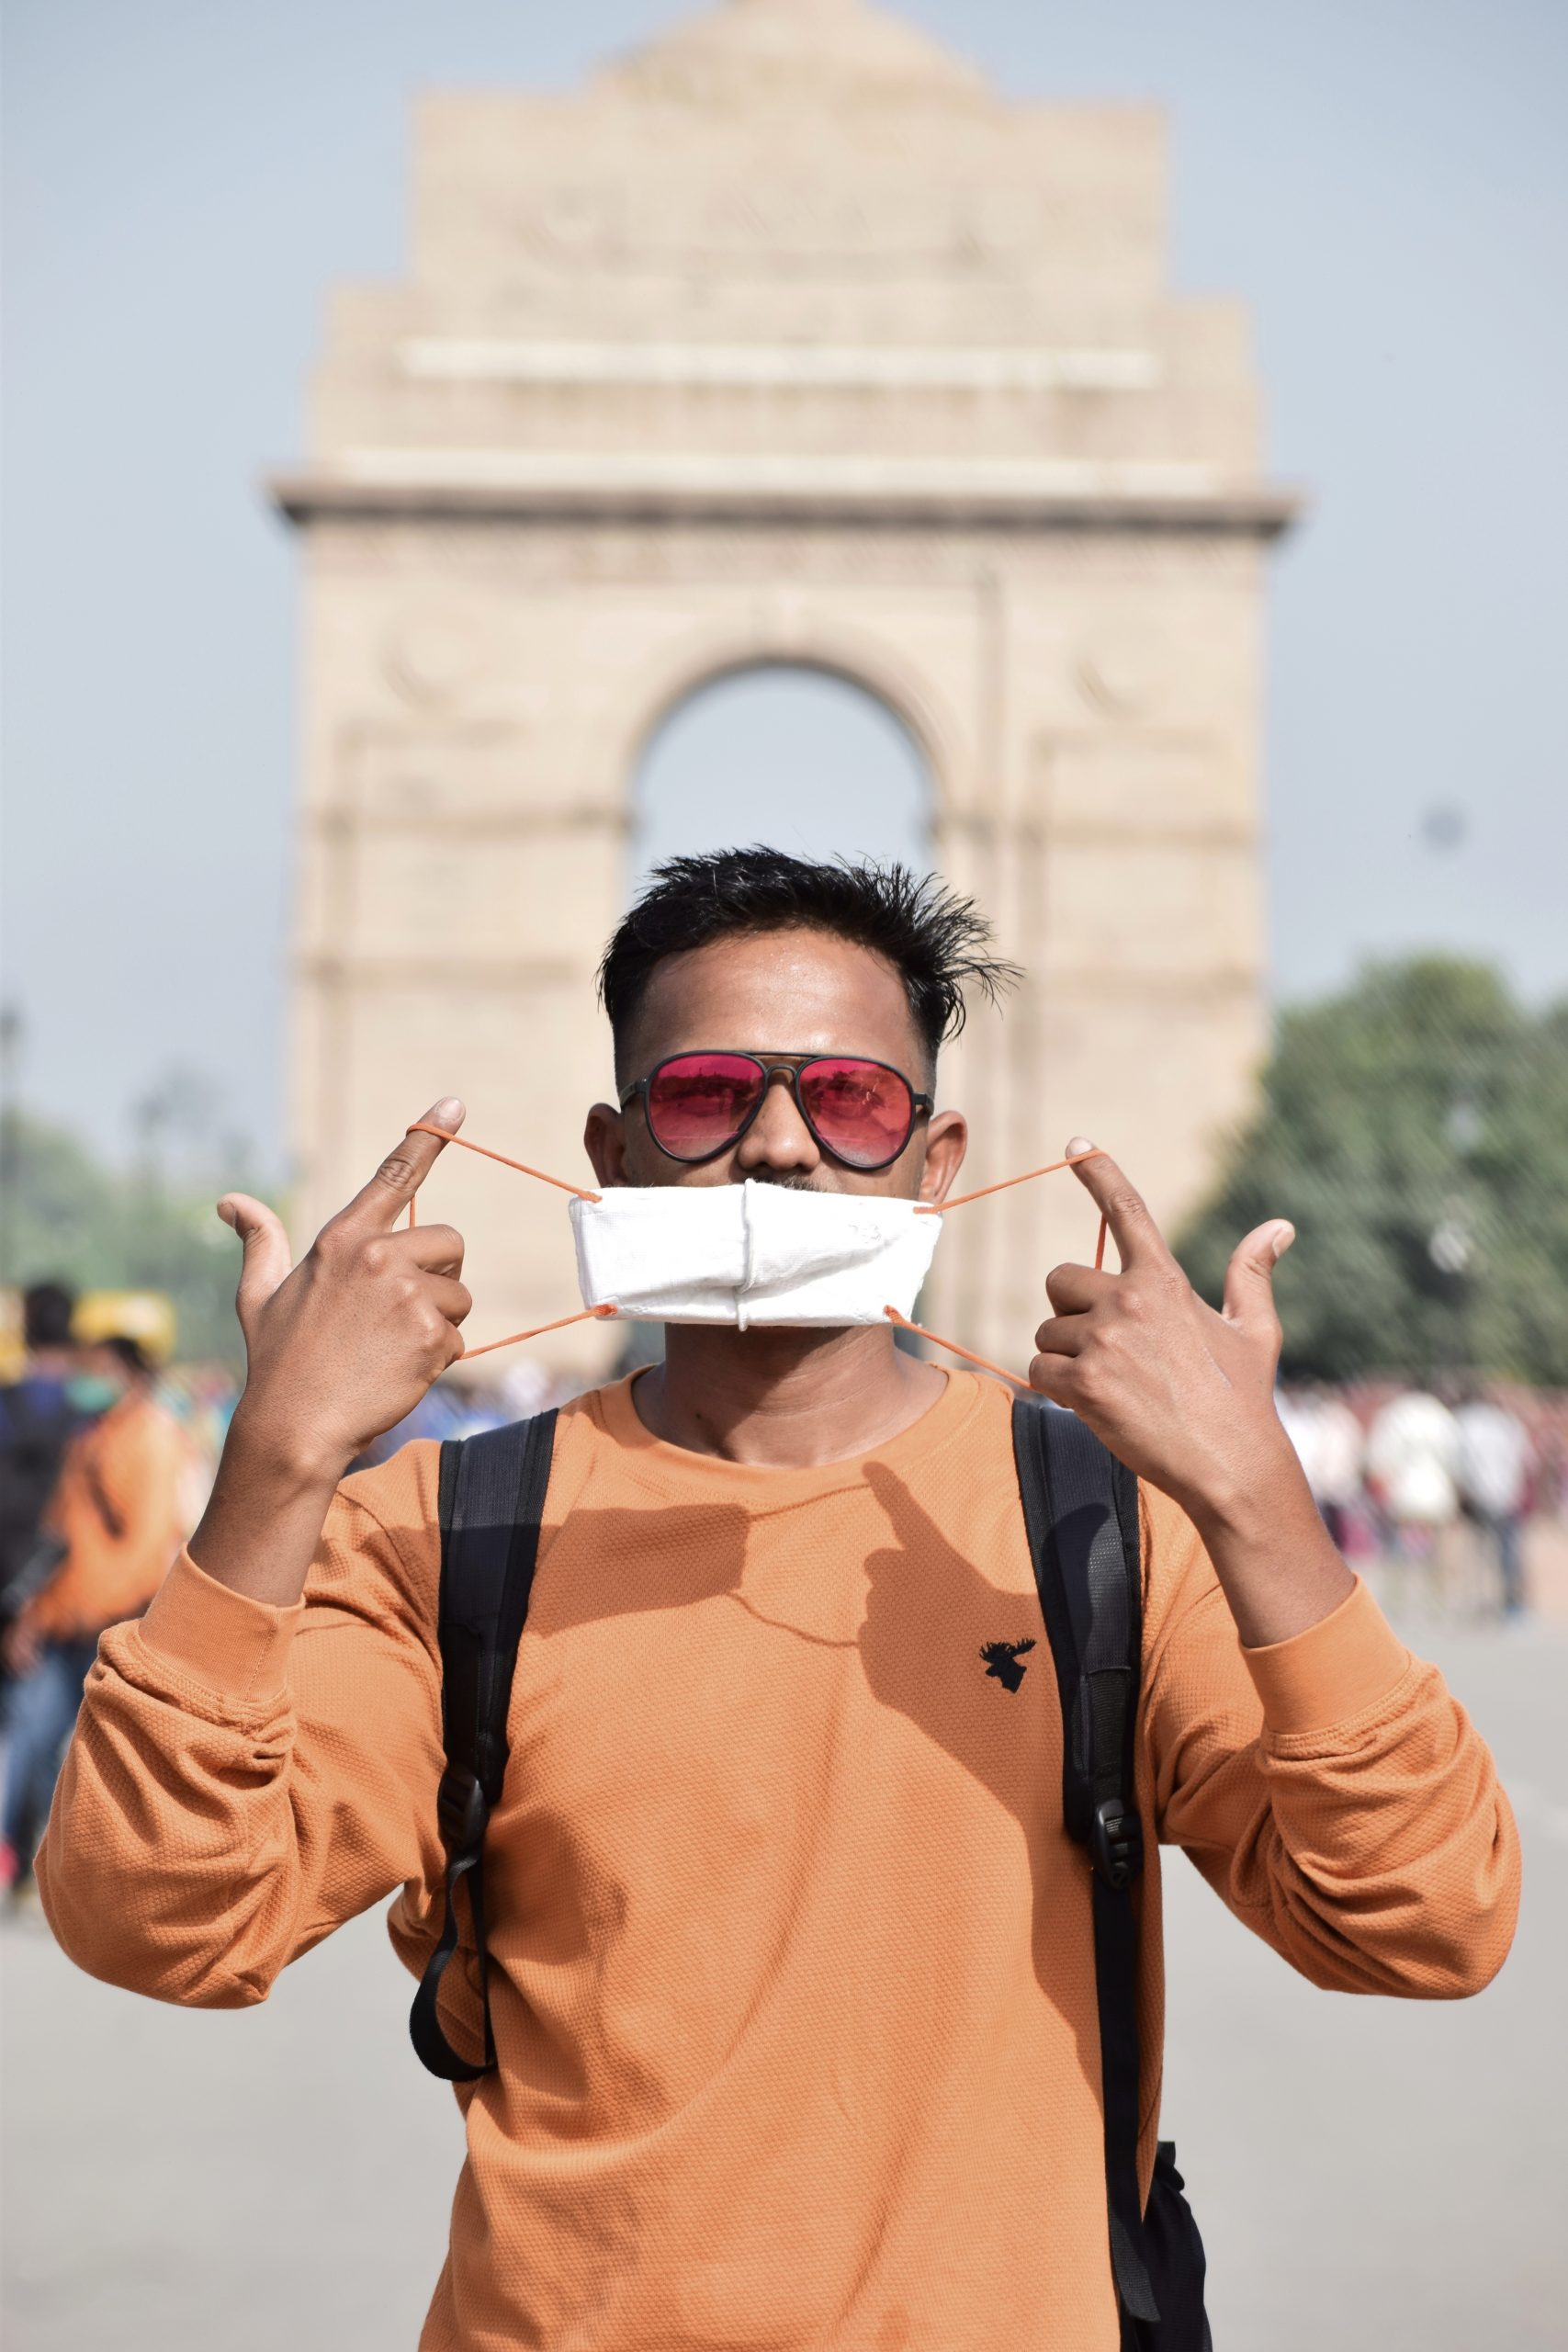 Boy posing in front of India gate